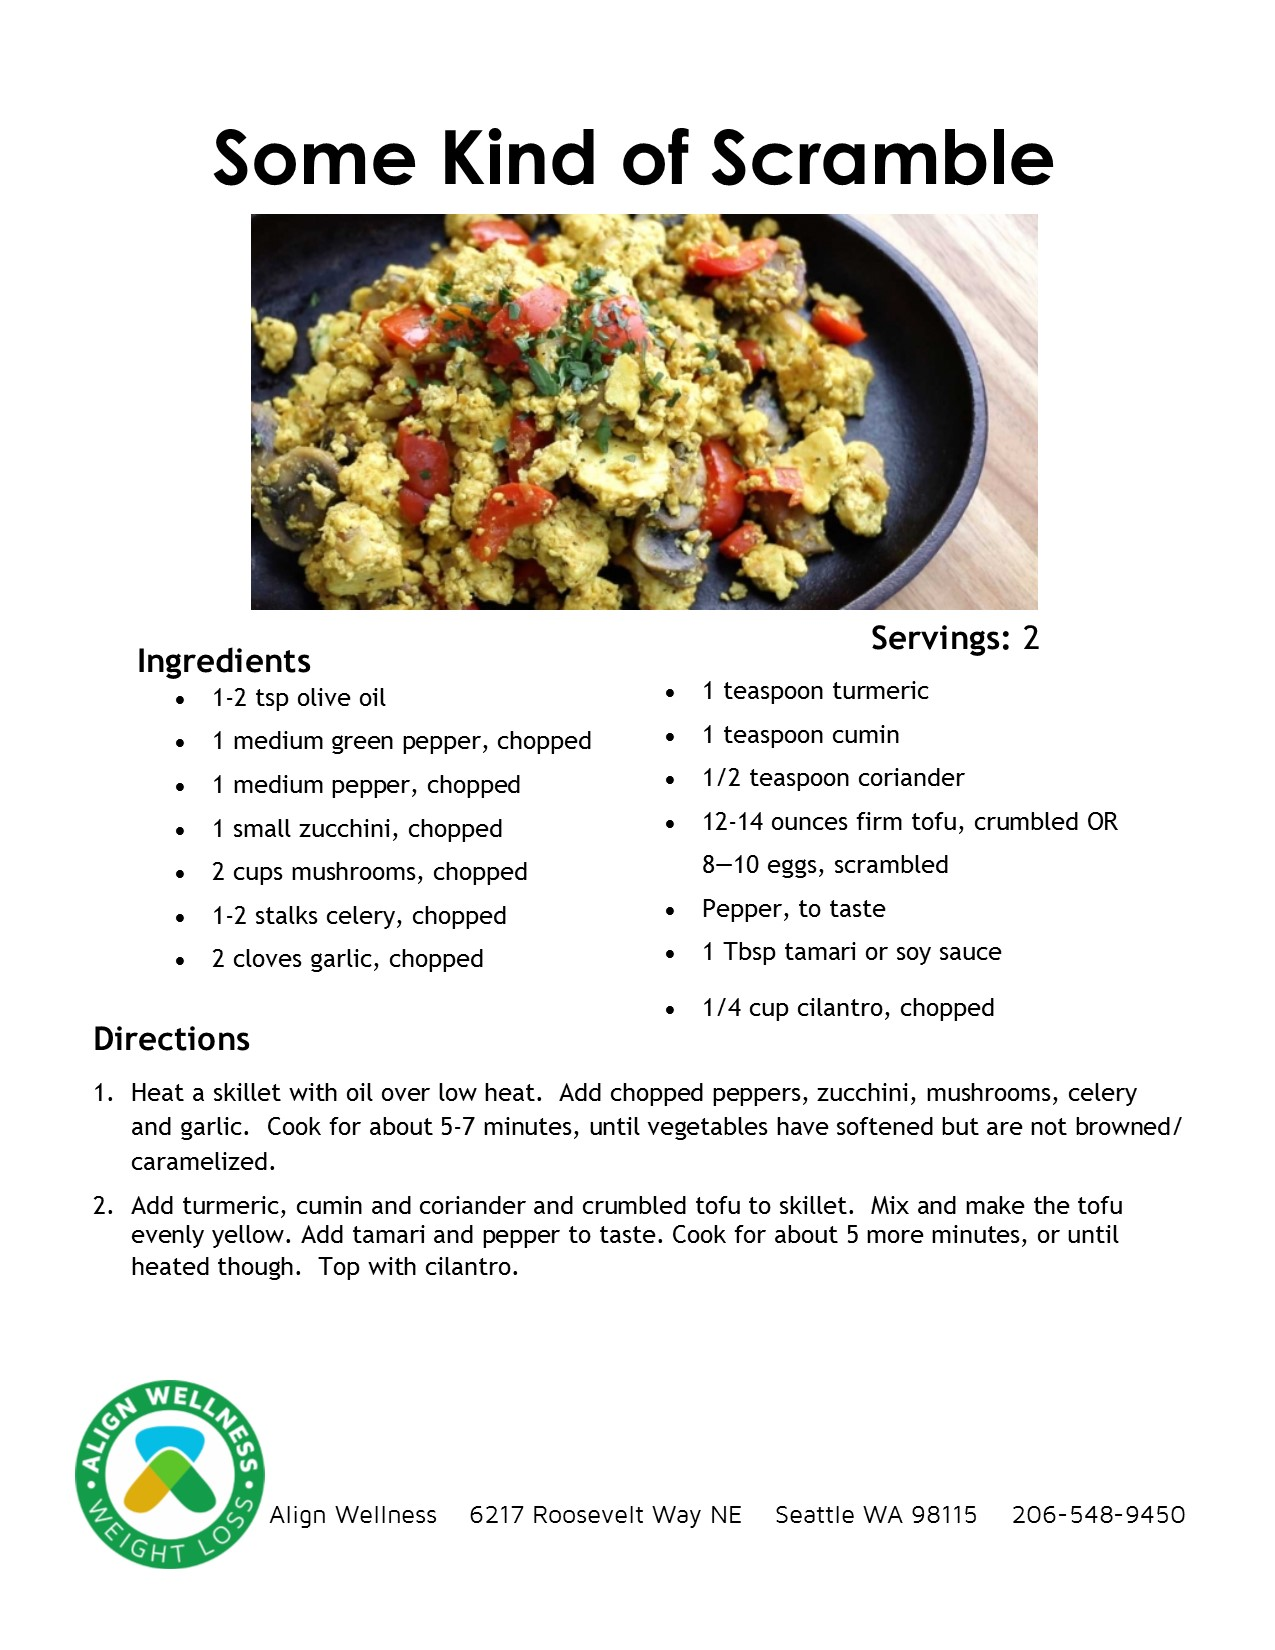 Some Kind of Scramble Ideal Protein Recipe